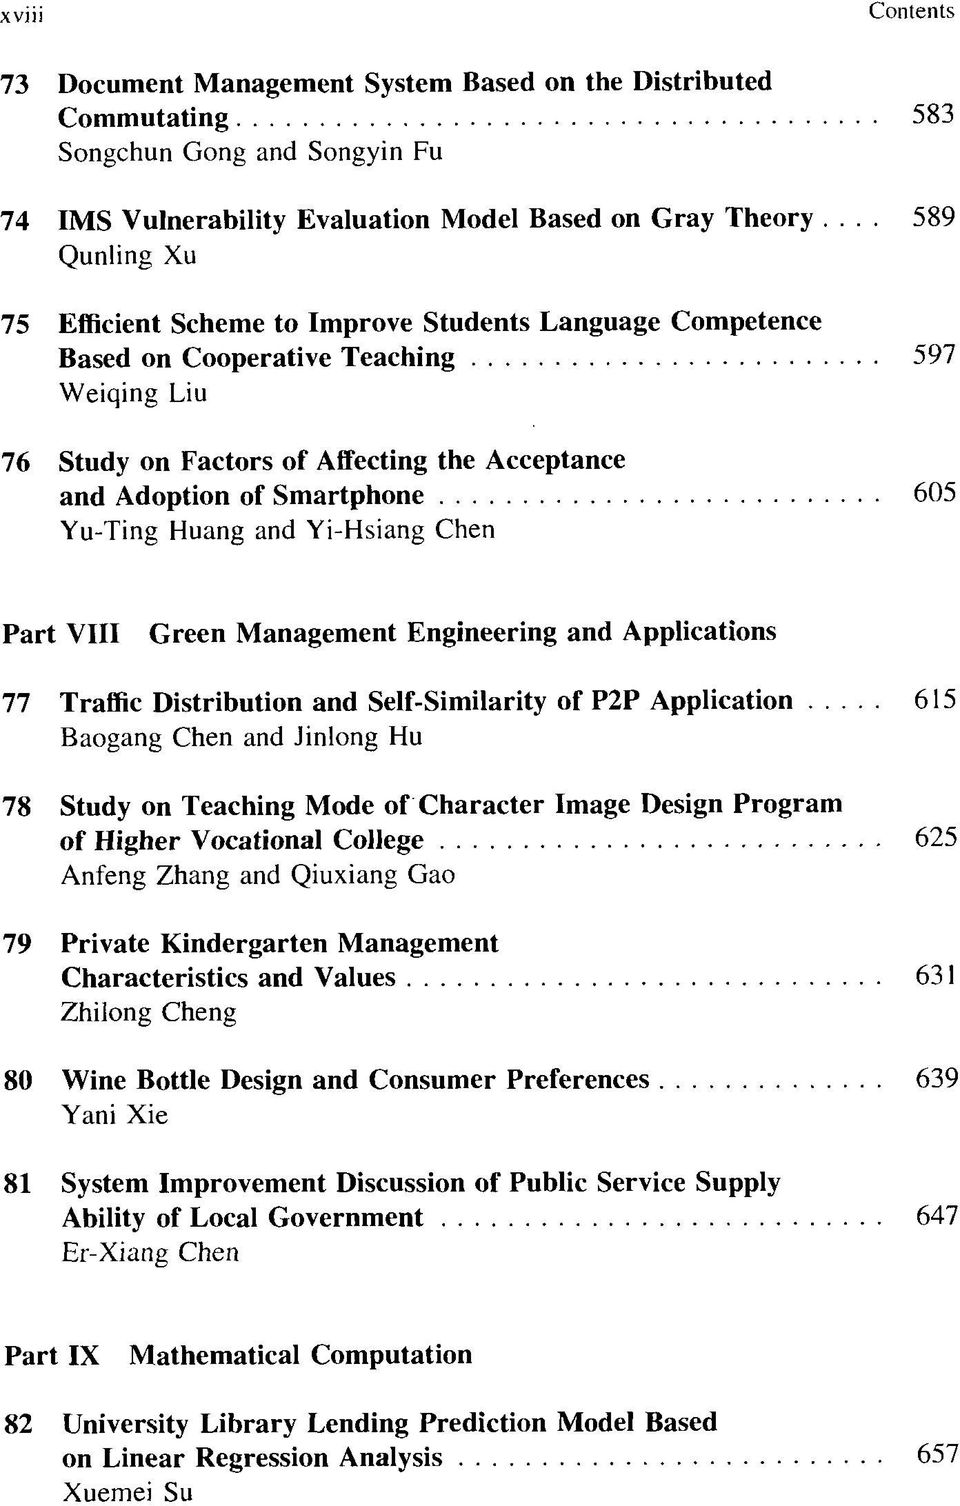 605 Yu-Ting Huang and Yi-Hsiang Chen Part VIII Green Management Engineering and Applications 77 Traffic Distribution and Self-Similarity of P2P Application 615 Baogang Chen and Jinlong Hu 78 Study on